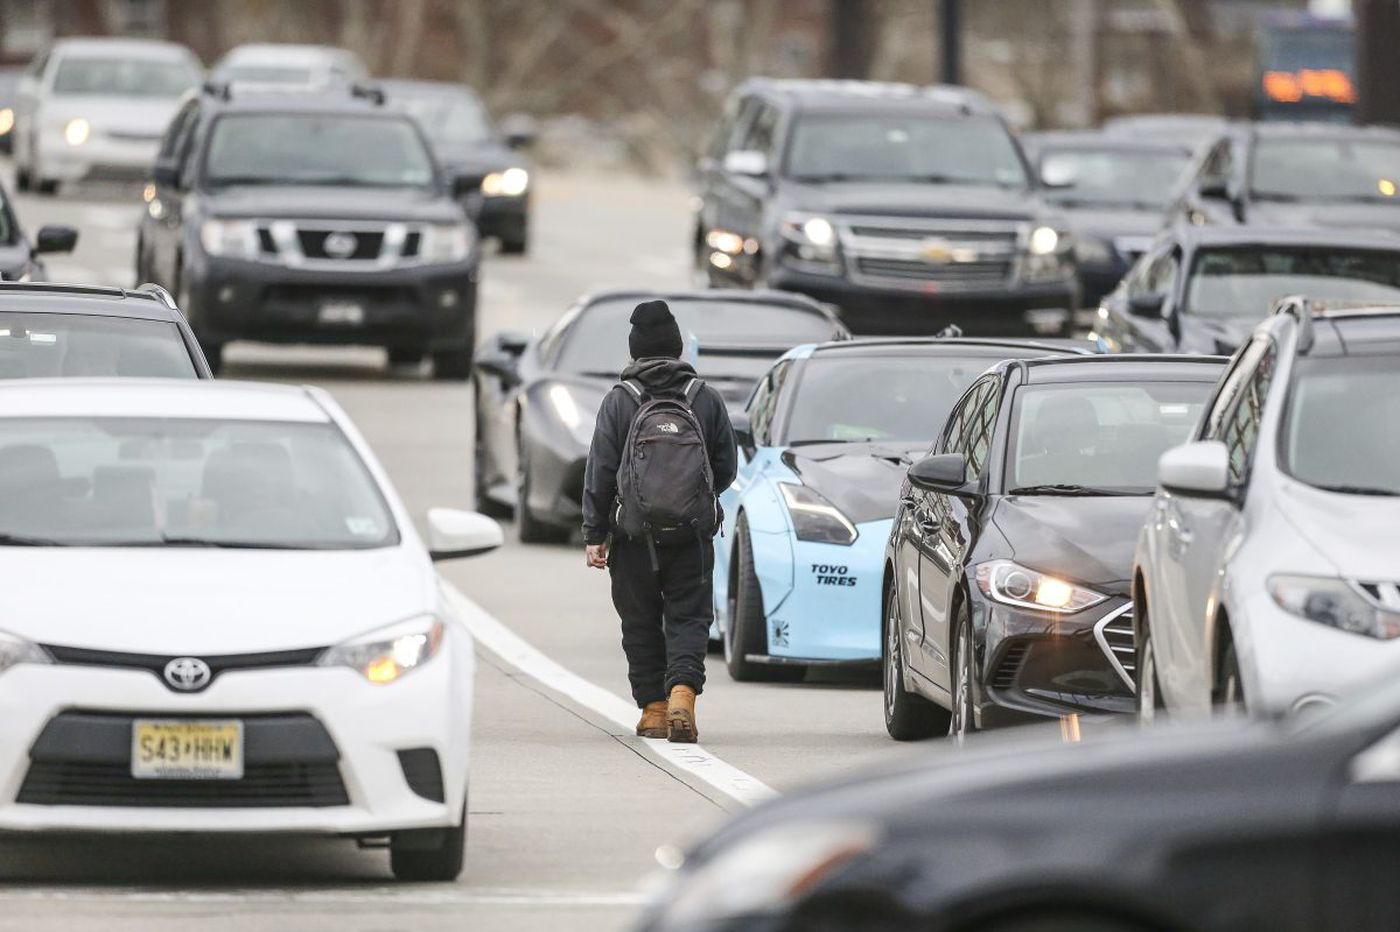 Panhandlers in Philly traffic ply a lucrative, but dangerous, trade